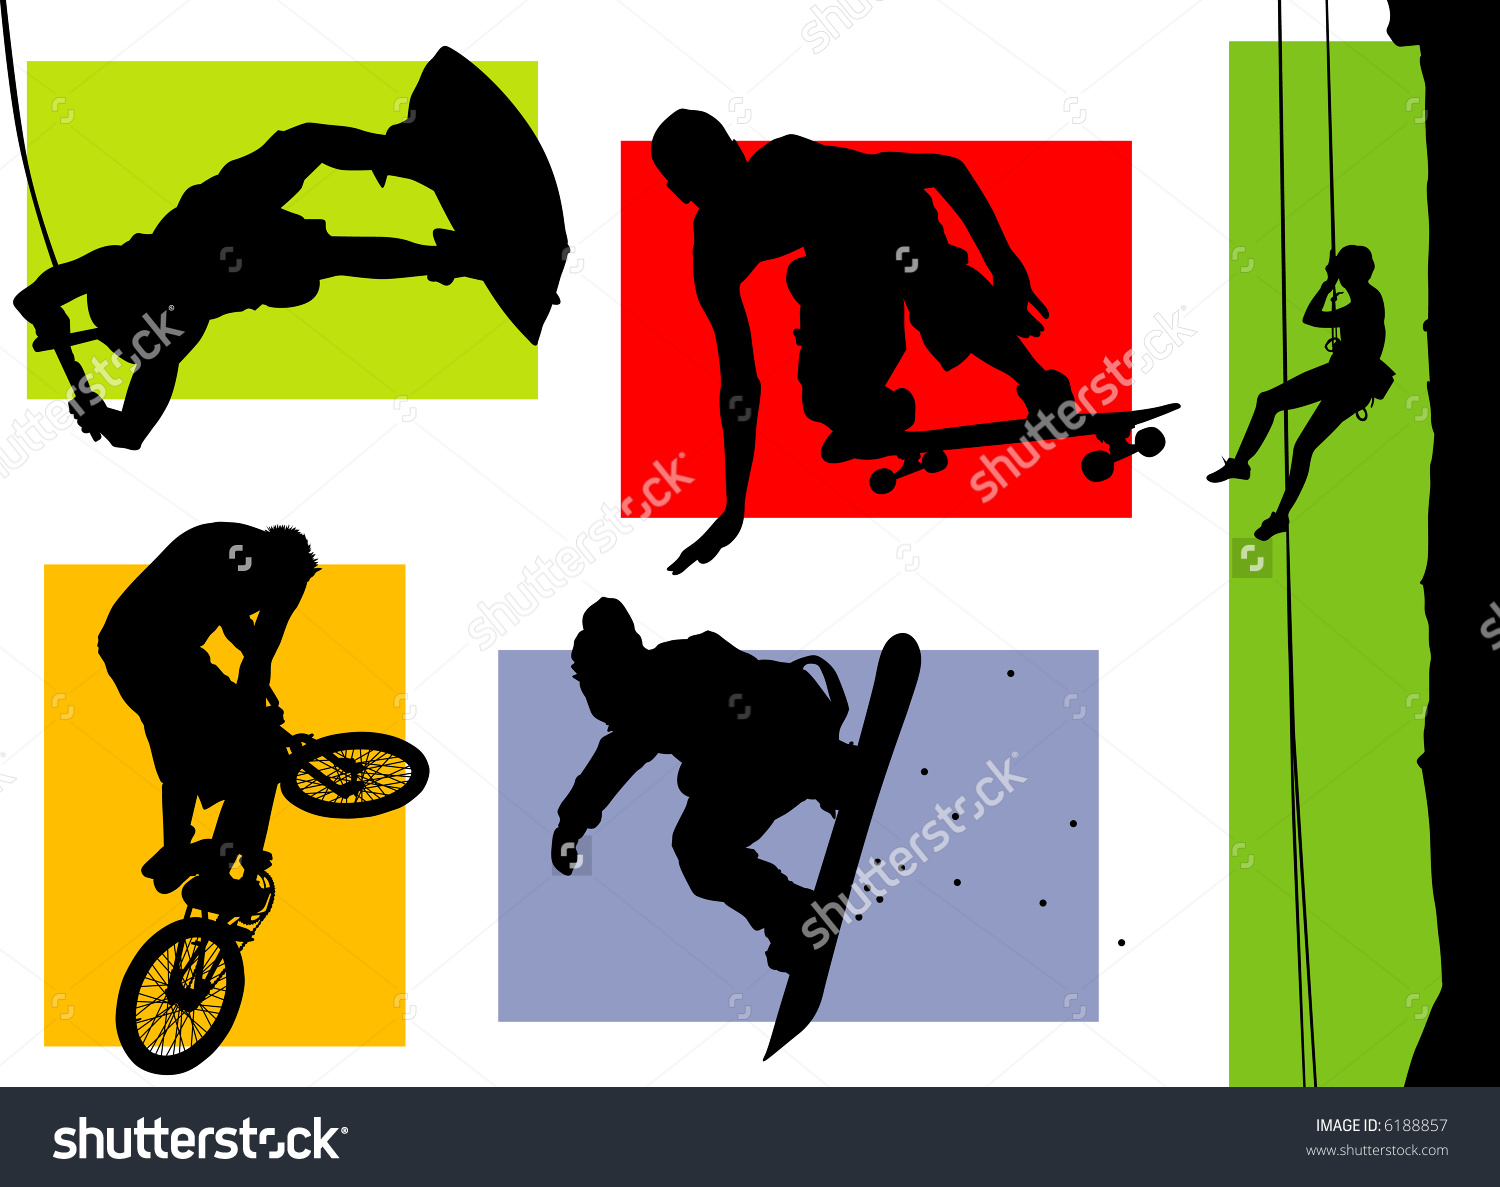 Silhouettes Of Several Extreme Sports Stock Vector Illustration.